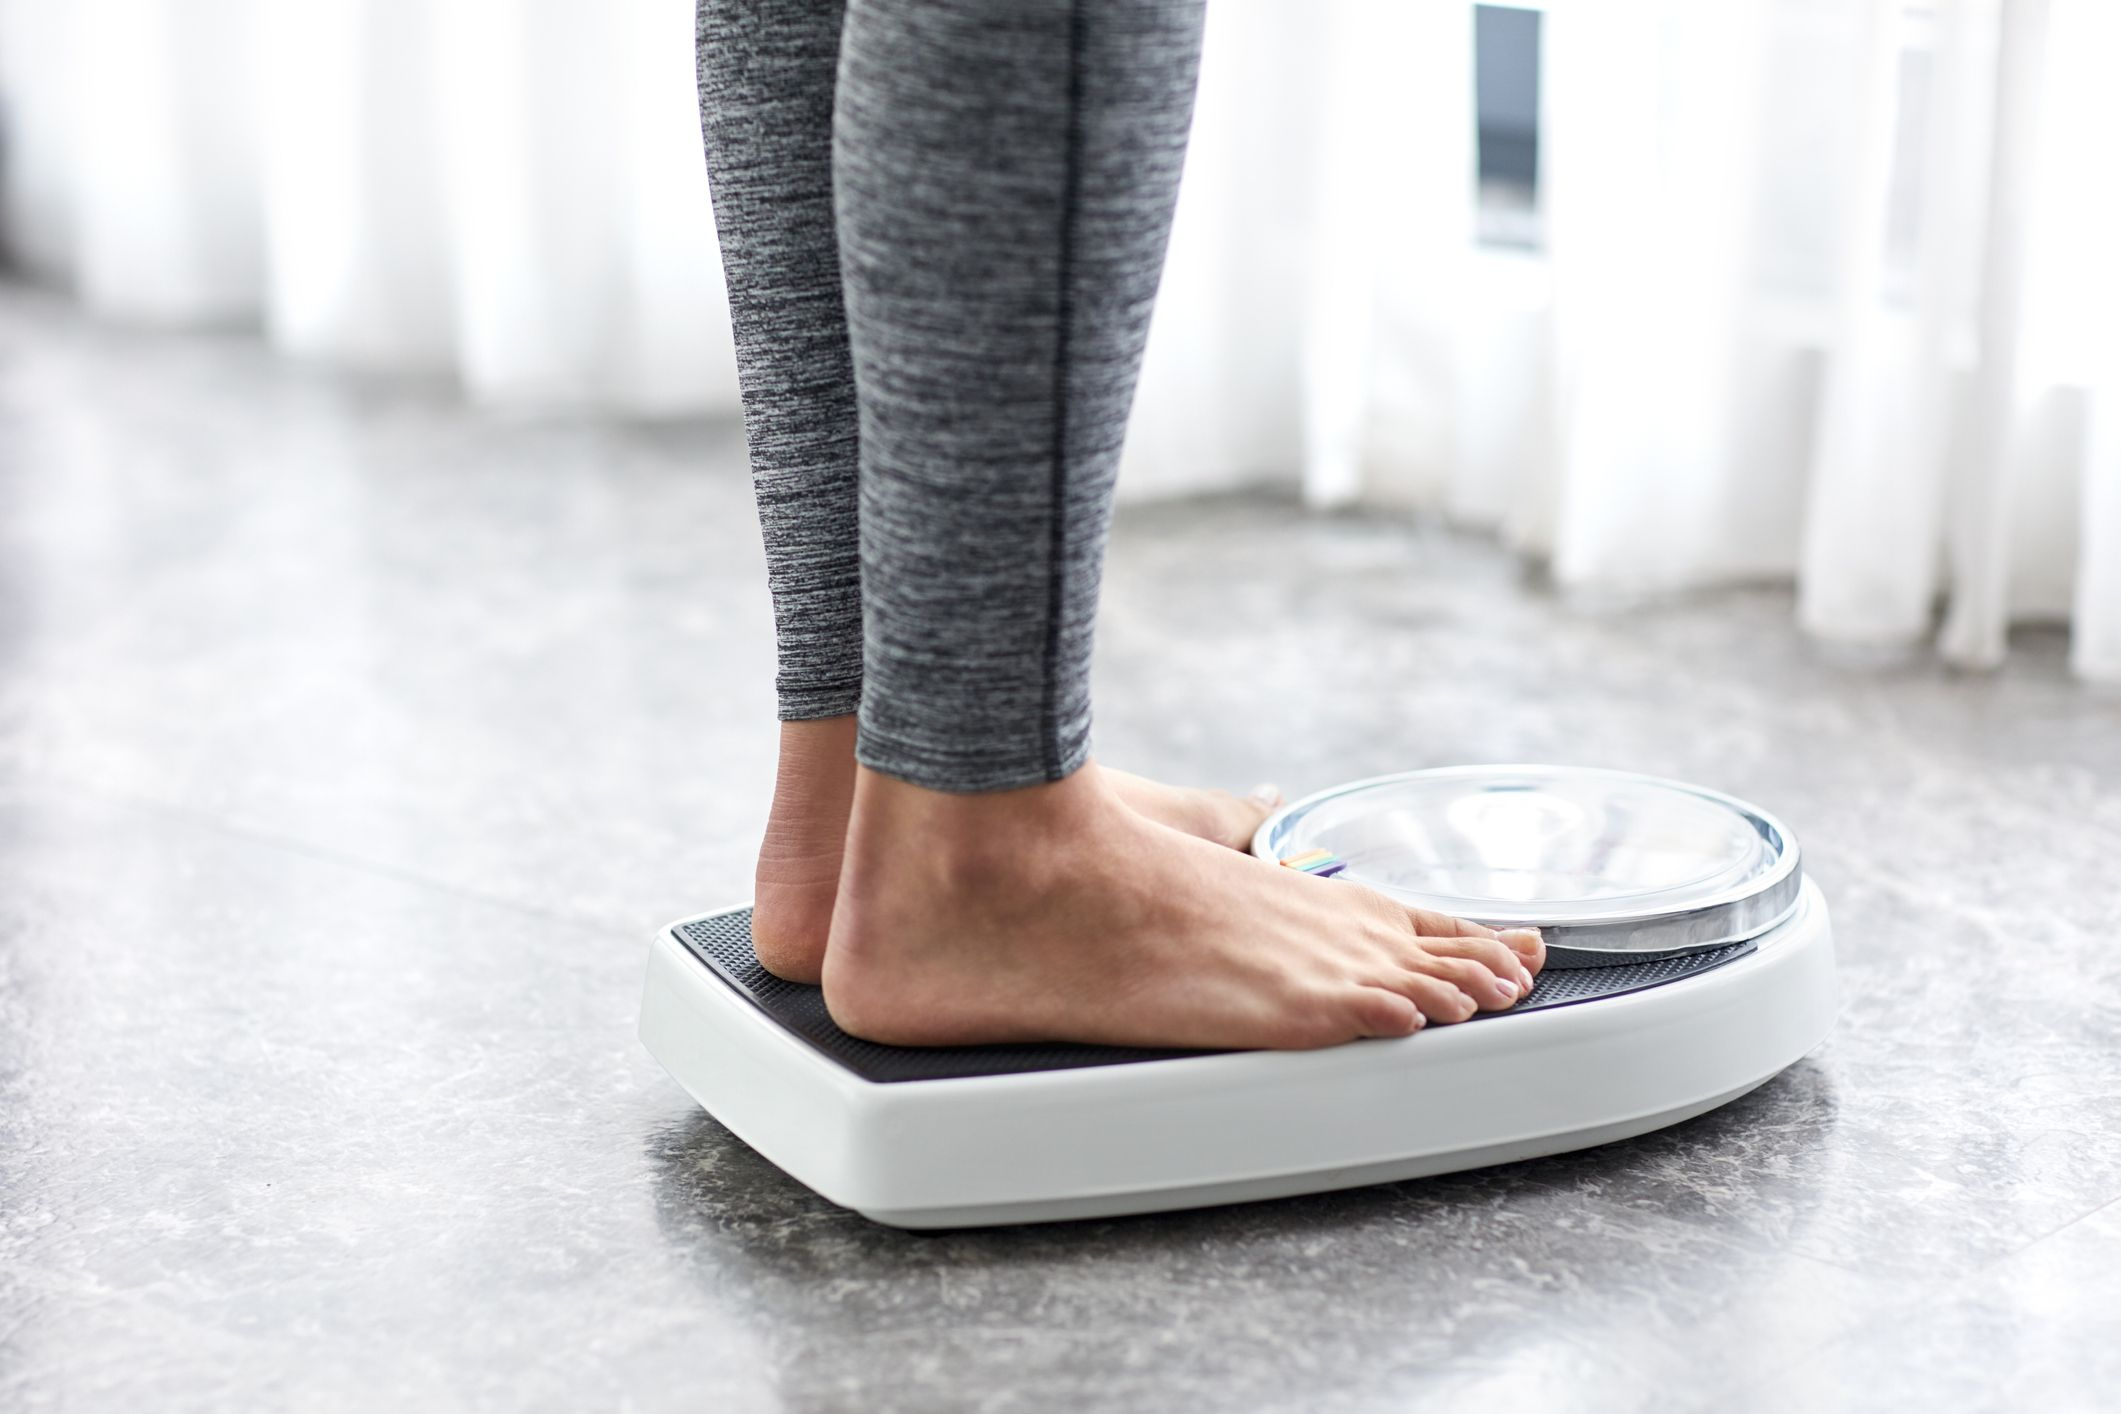 How Much Weight Can You Lose In A Month—And Still Be Healthy?